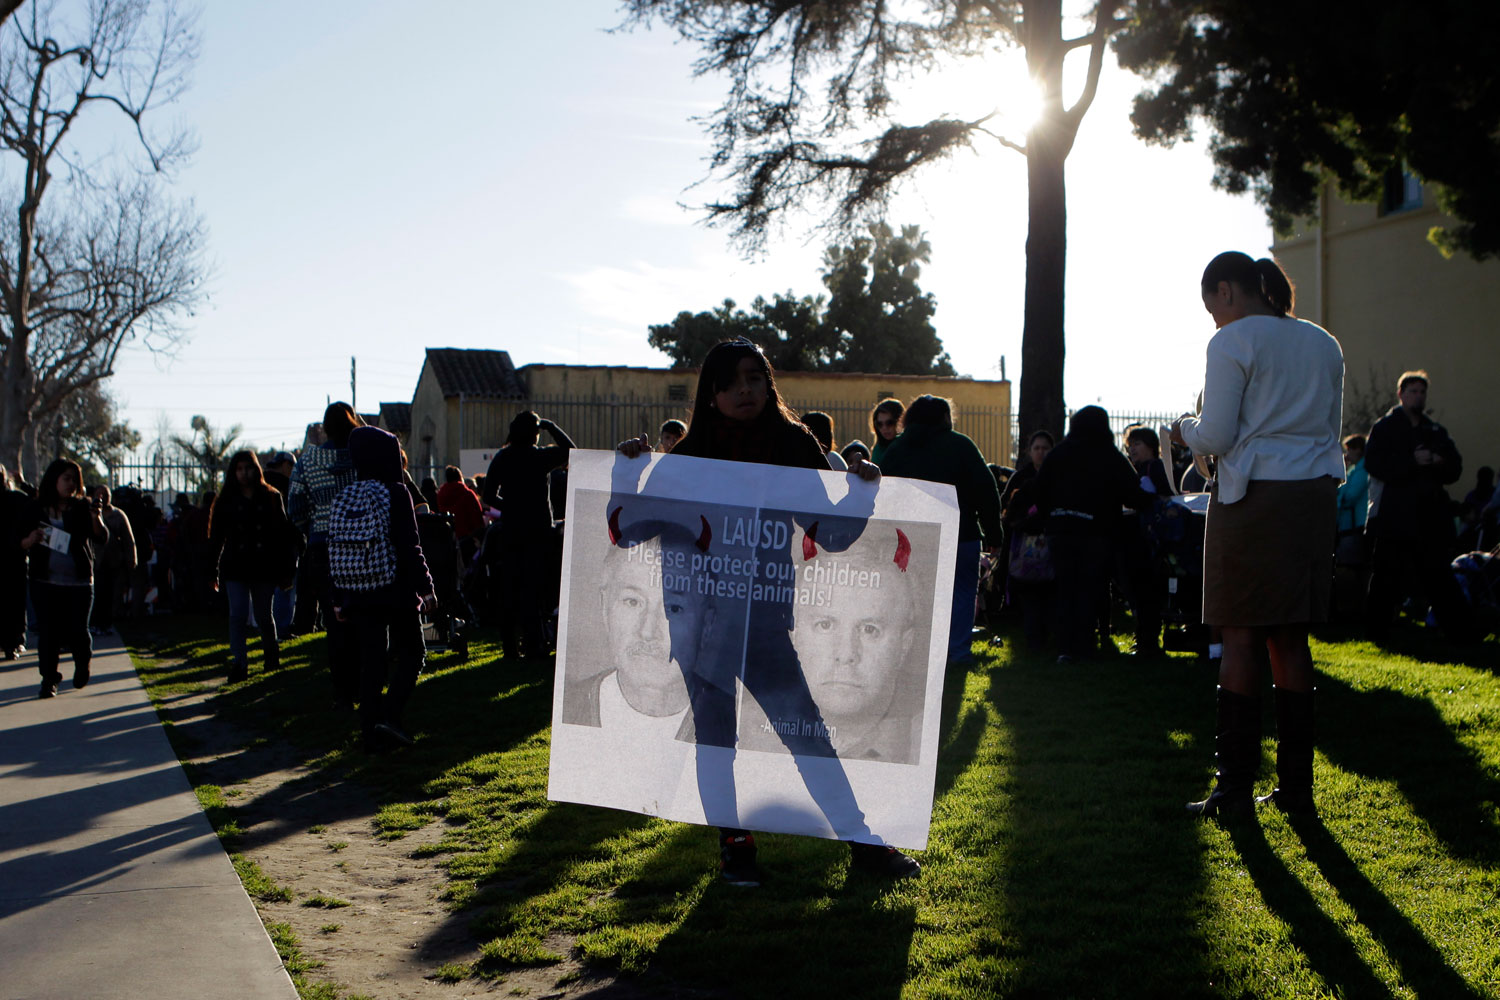 February 9, 2012. Ashley Villatoro, 9, holds a sign showing images of former teacher Martin B. Springer outside Miramonte Elementary School in Los Angeles. The entire staff of the school has been replaced following the arrests of two former teachers on charges of committing lewd acts with students.